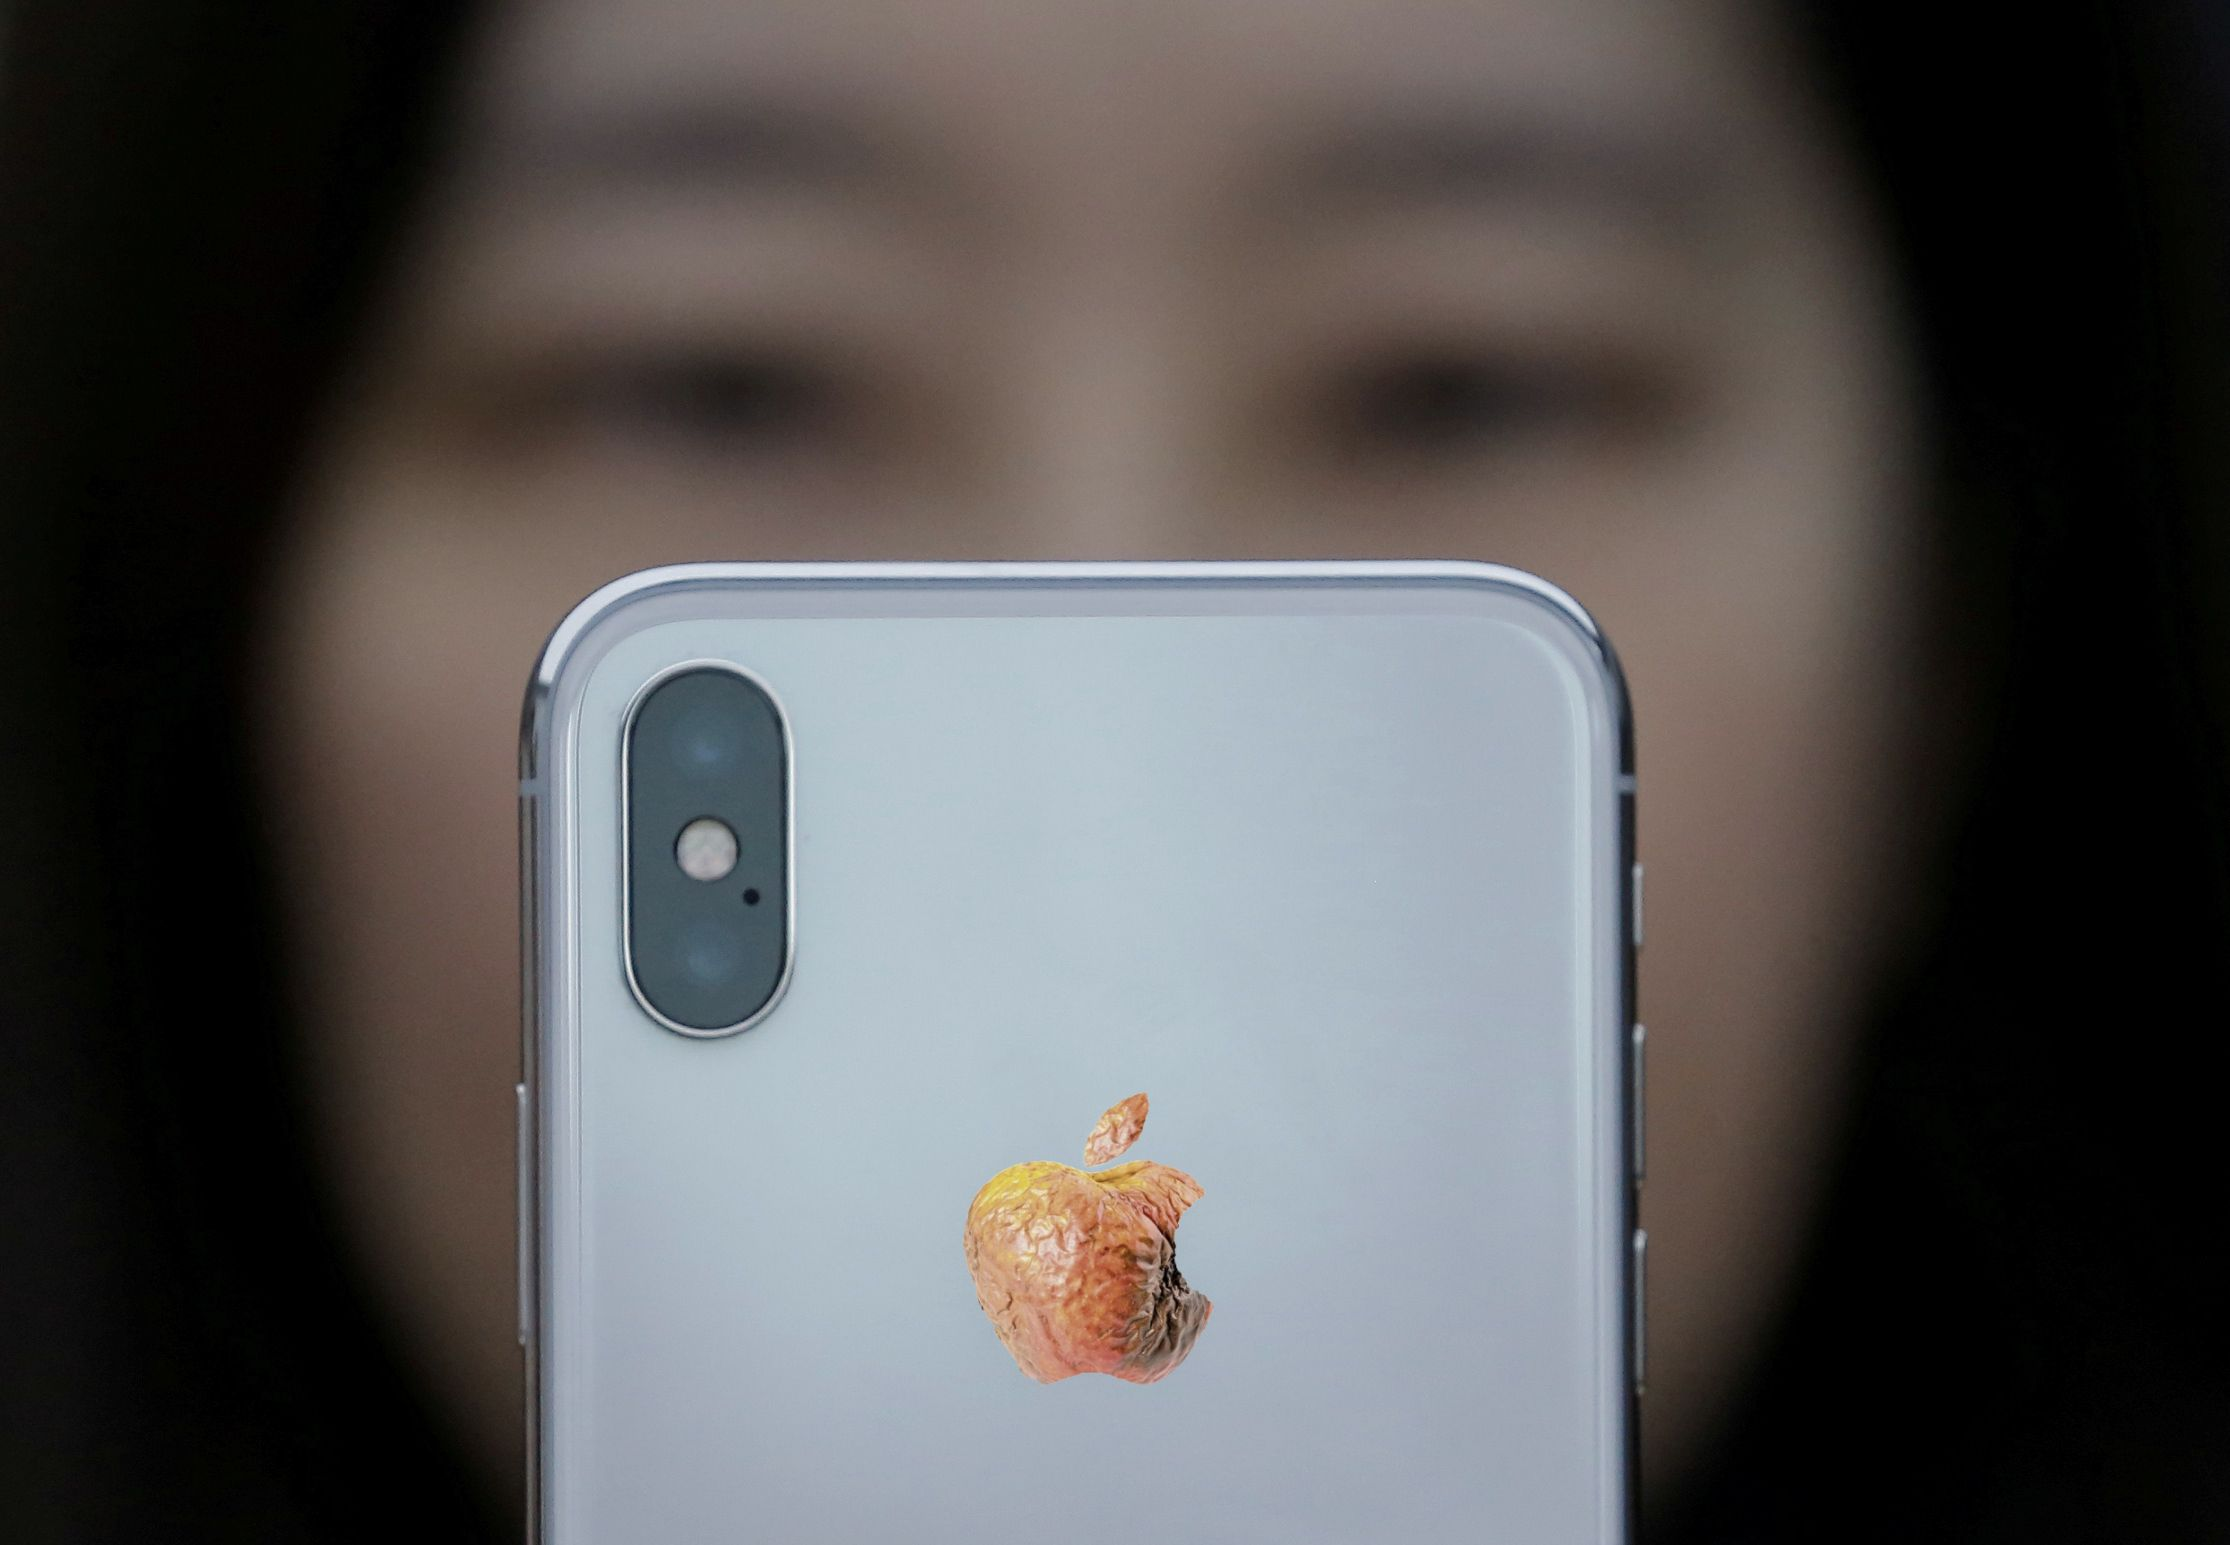 apple iPhone X china factory conditions